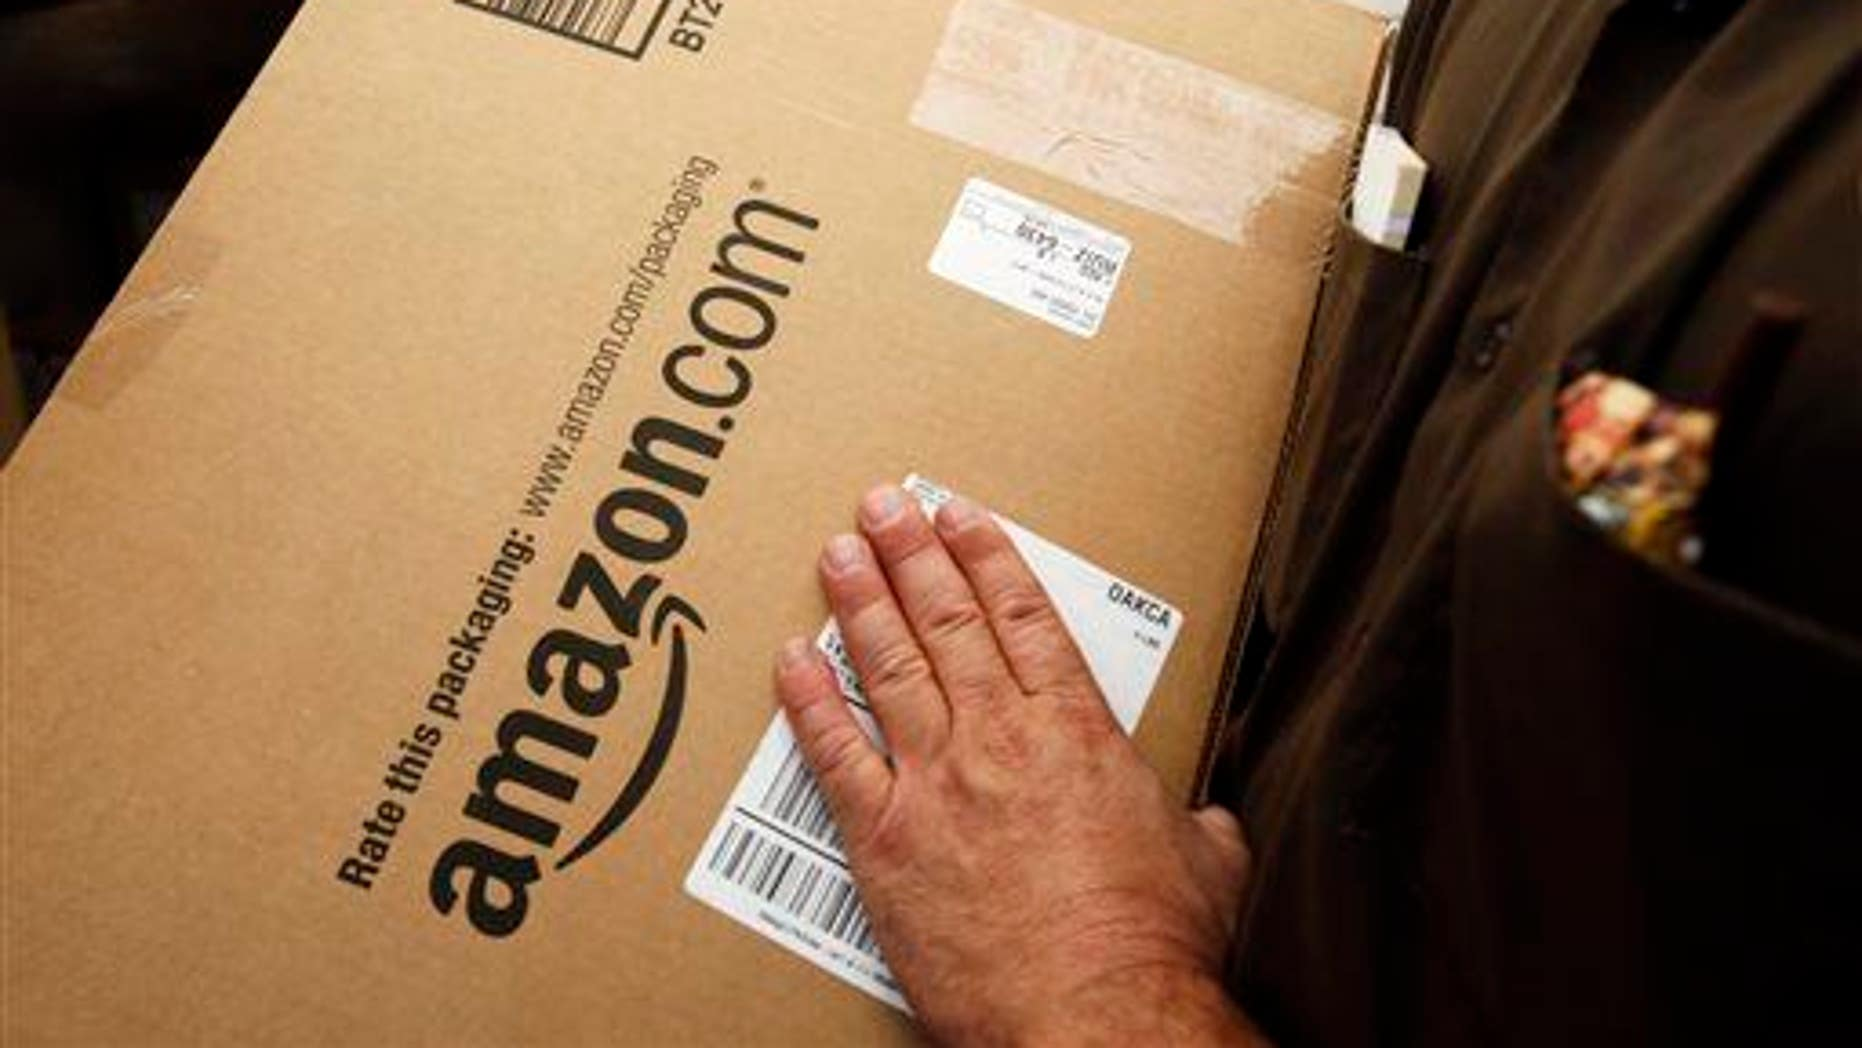 In this Oct. 18, 2010 file photo, an Amazon.com package is prepared for shipment by a United Parcel Service driver in Palo Alto, Calif.